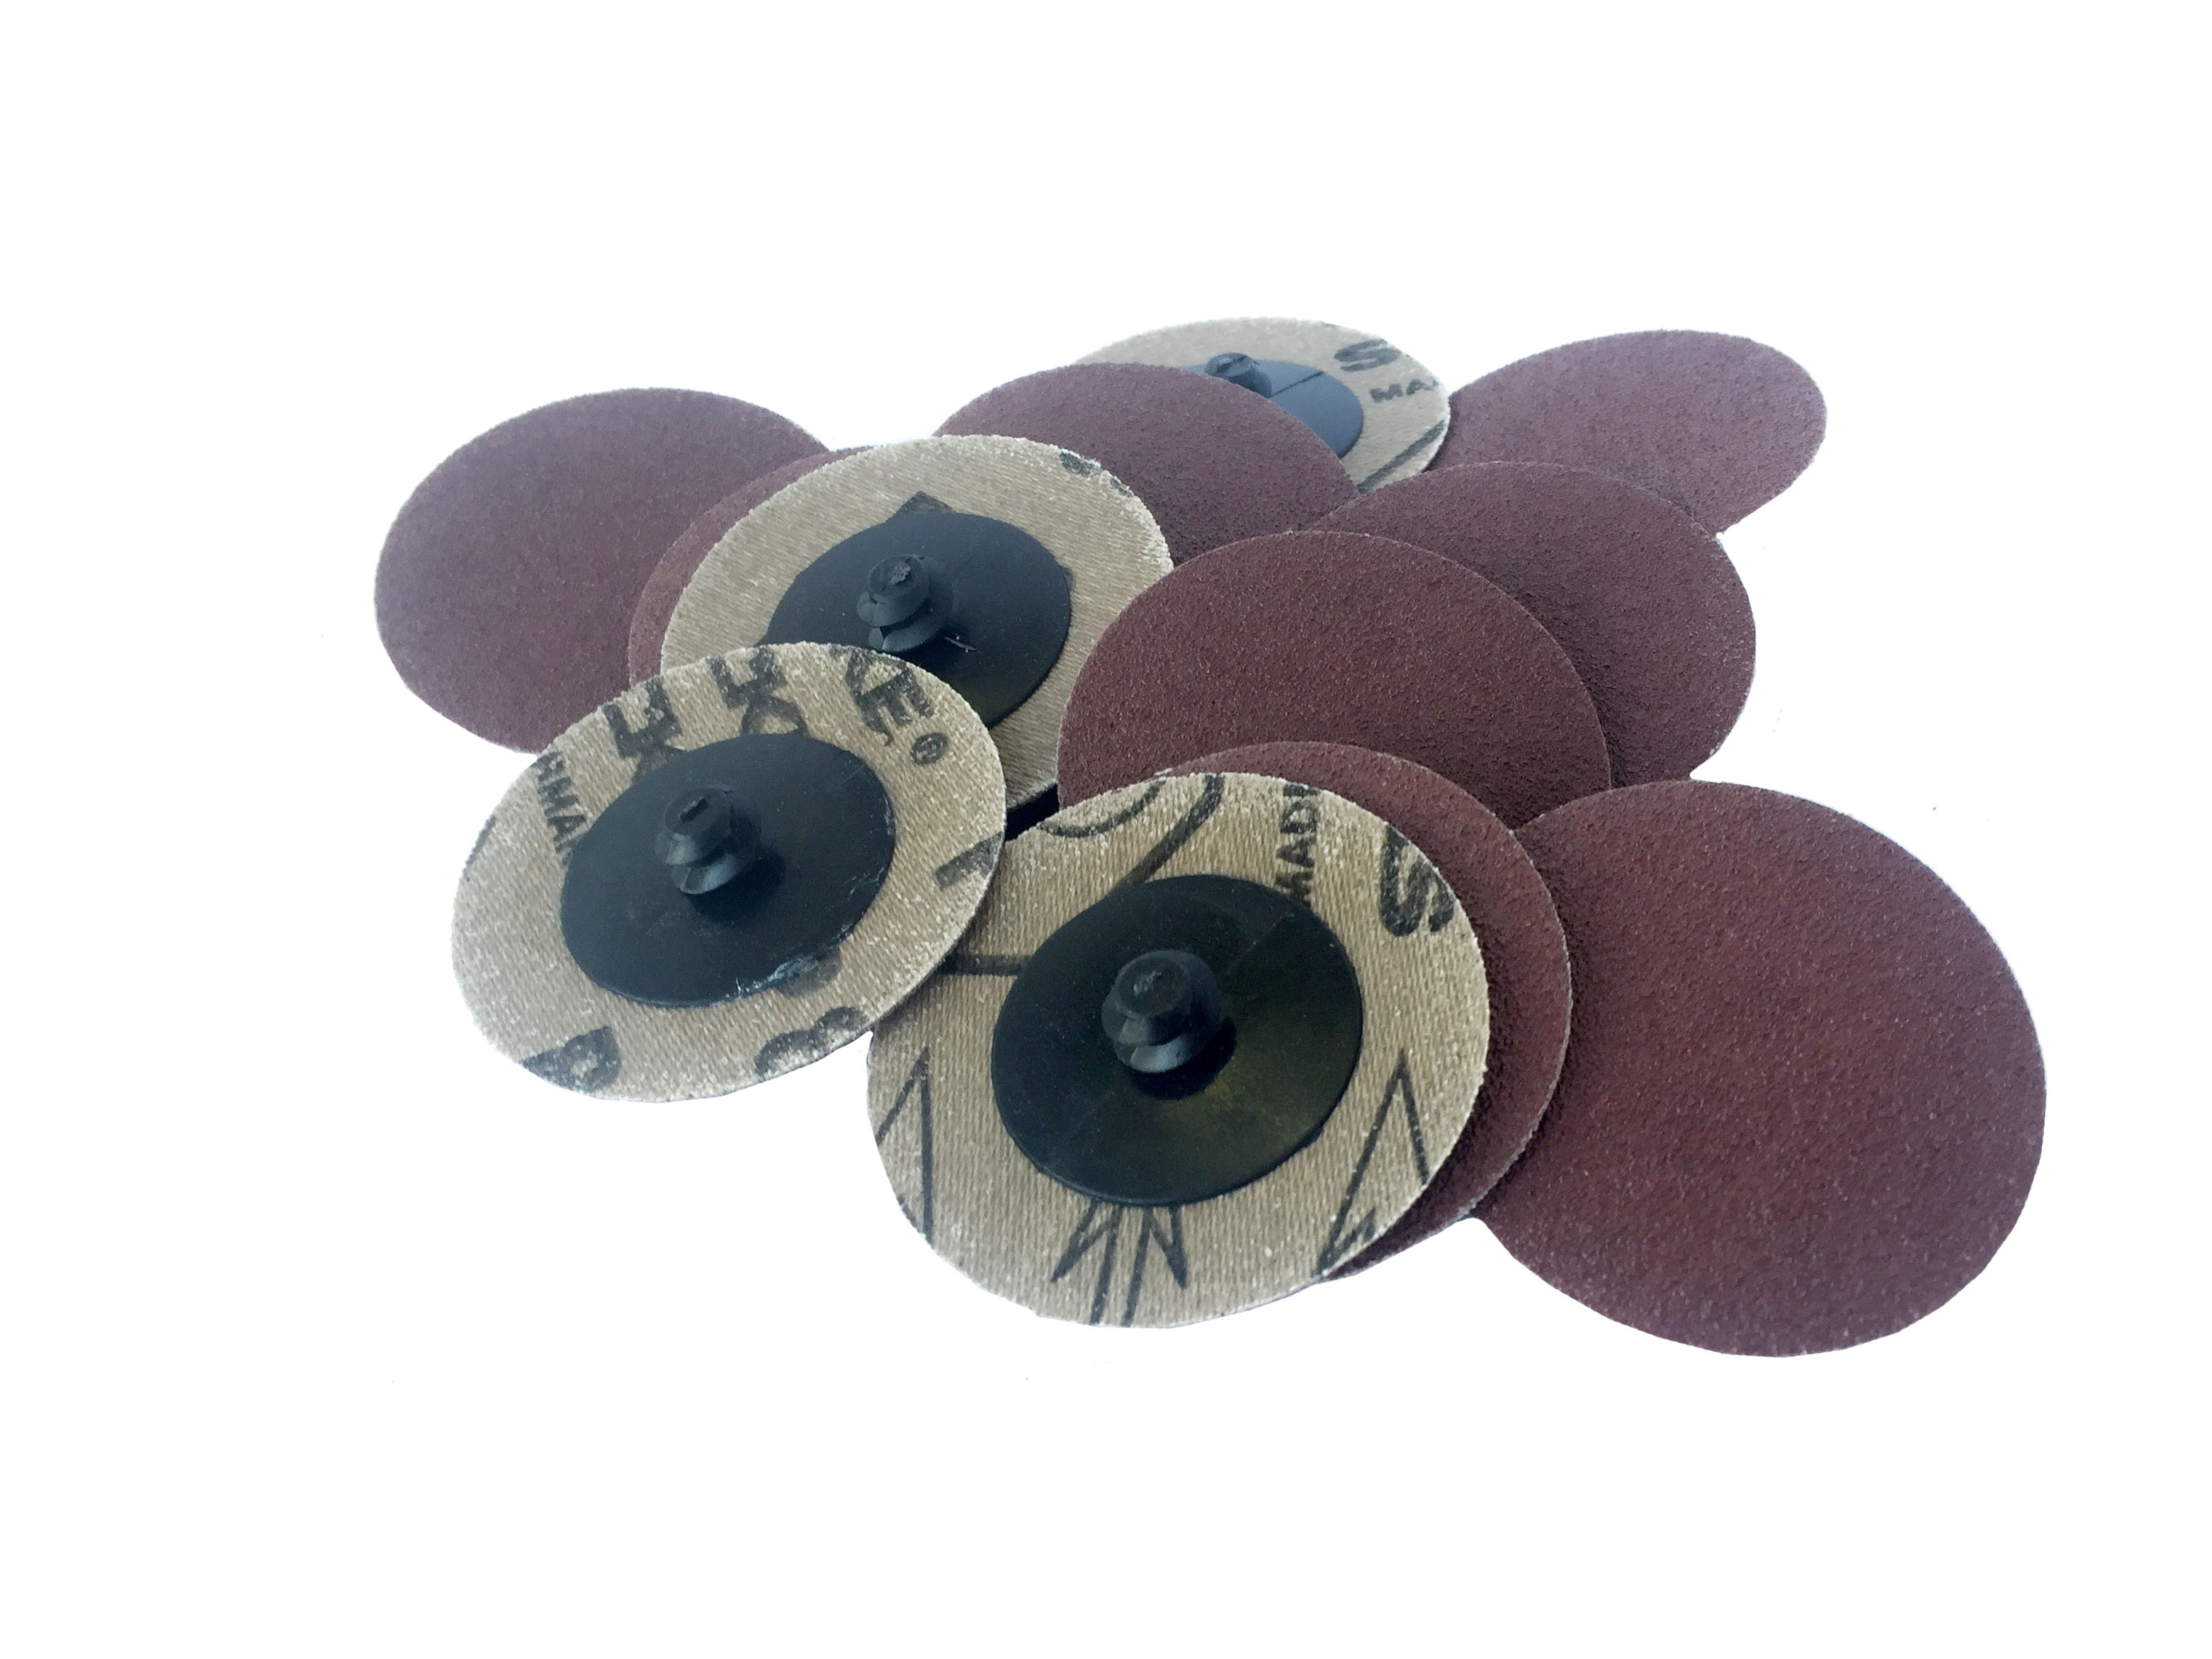 2 Quick Change Roll On AO Type R Sanding Discs 80 Grit, 25 Pack